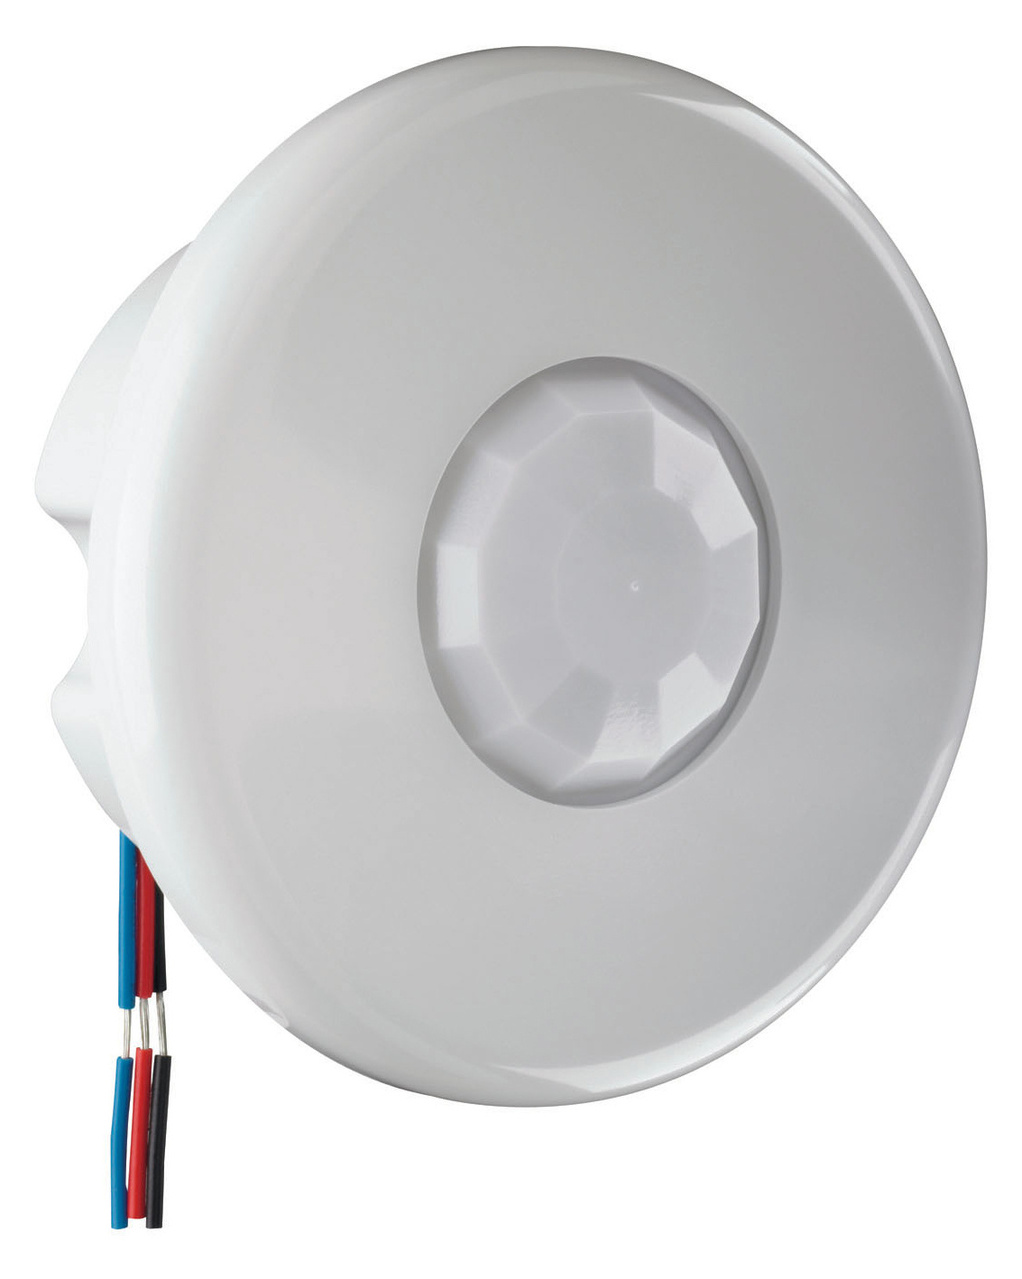 cs1200jpg.ashx?h=350&w=350&bc=FFFFFF commercial occupancy sensor,cs1200 legrand ceiling occupancy sensor wiring diagram at edmiracle.co